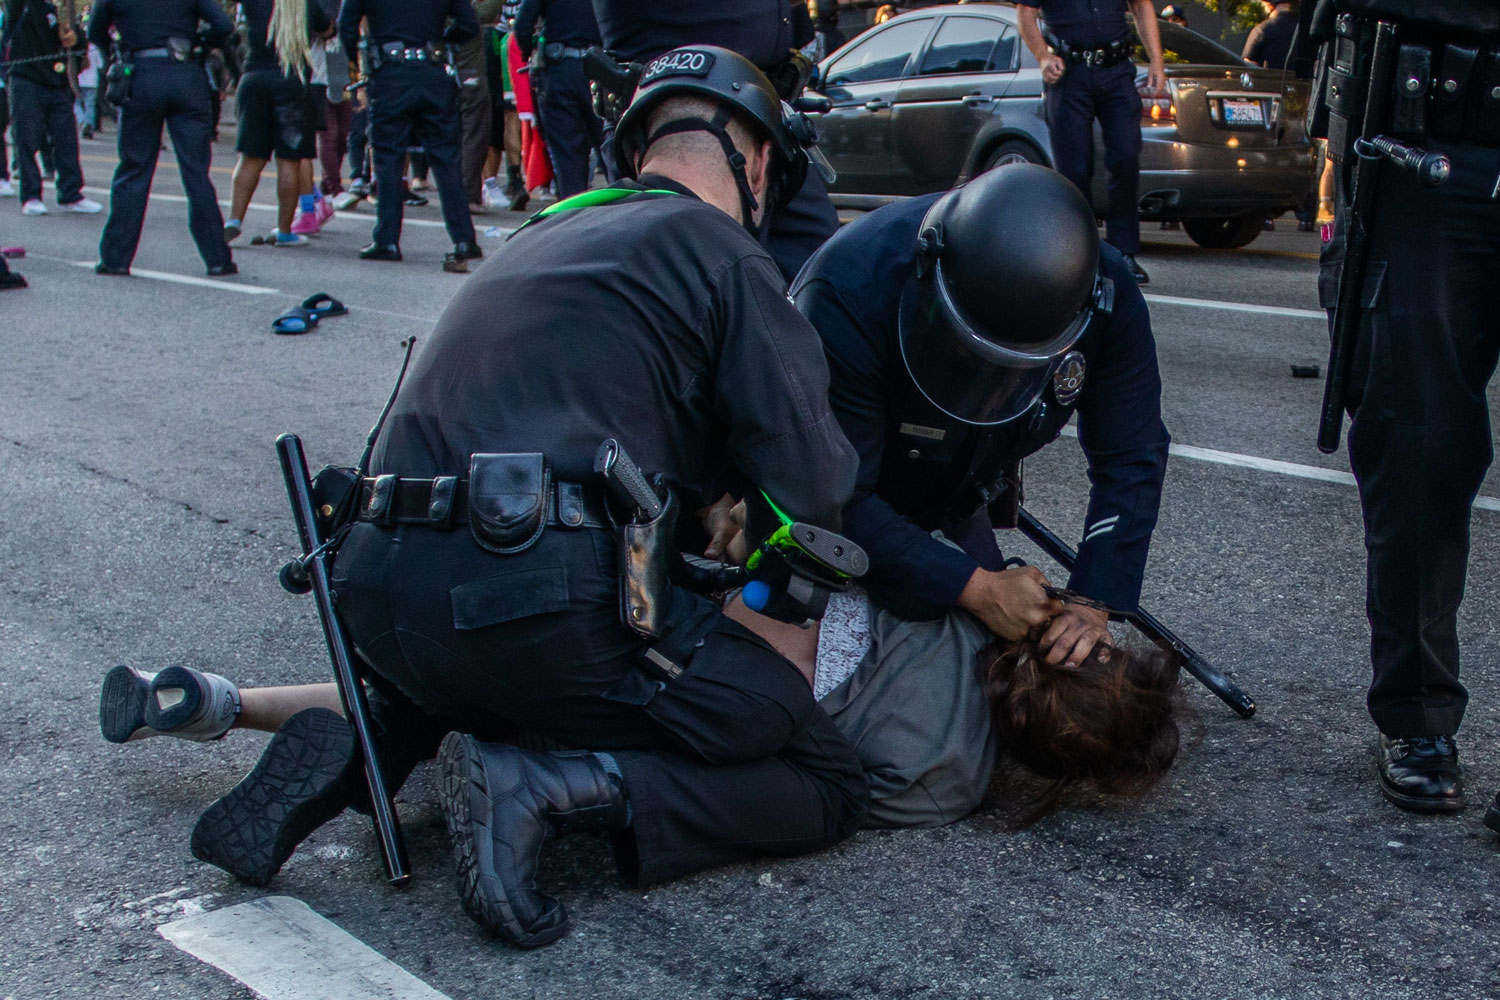 Two police officers, both wearing helmets, pin a protester down in the middle of a street.